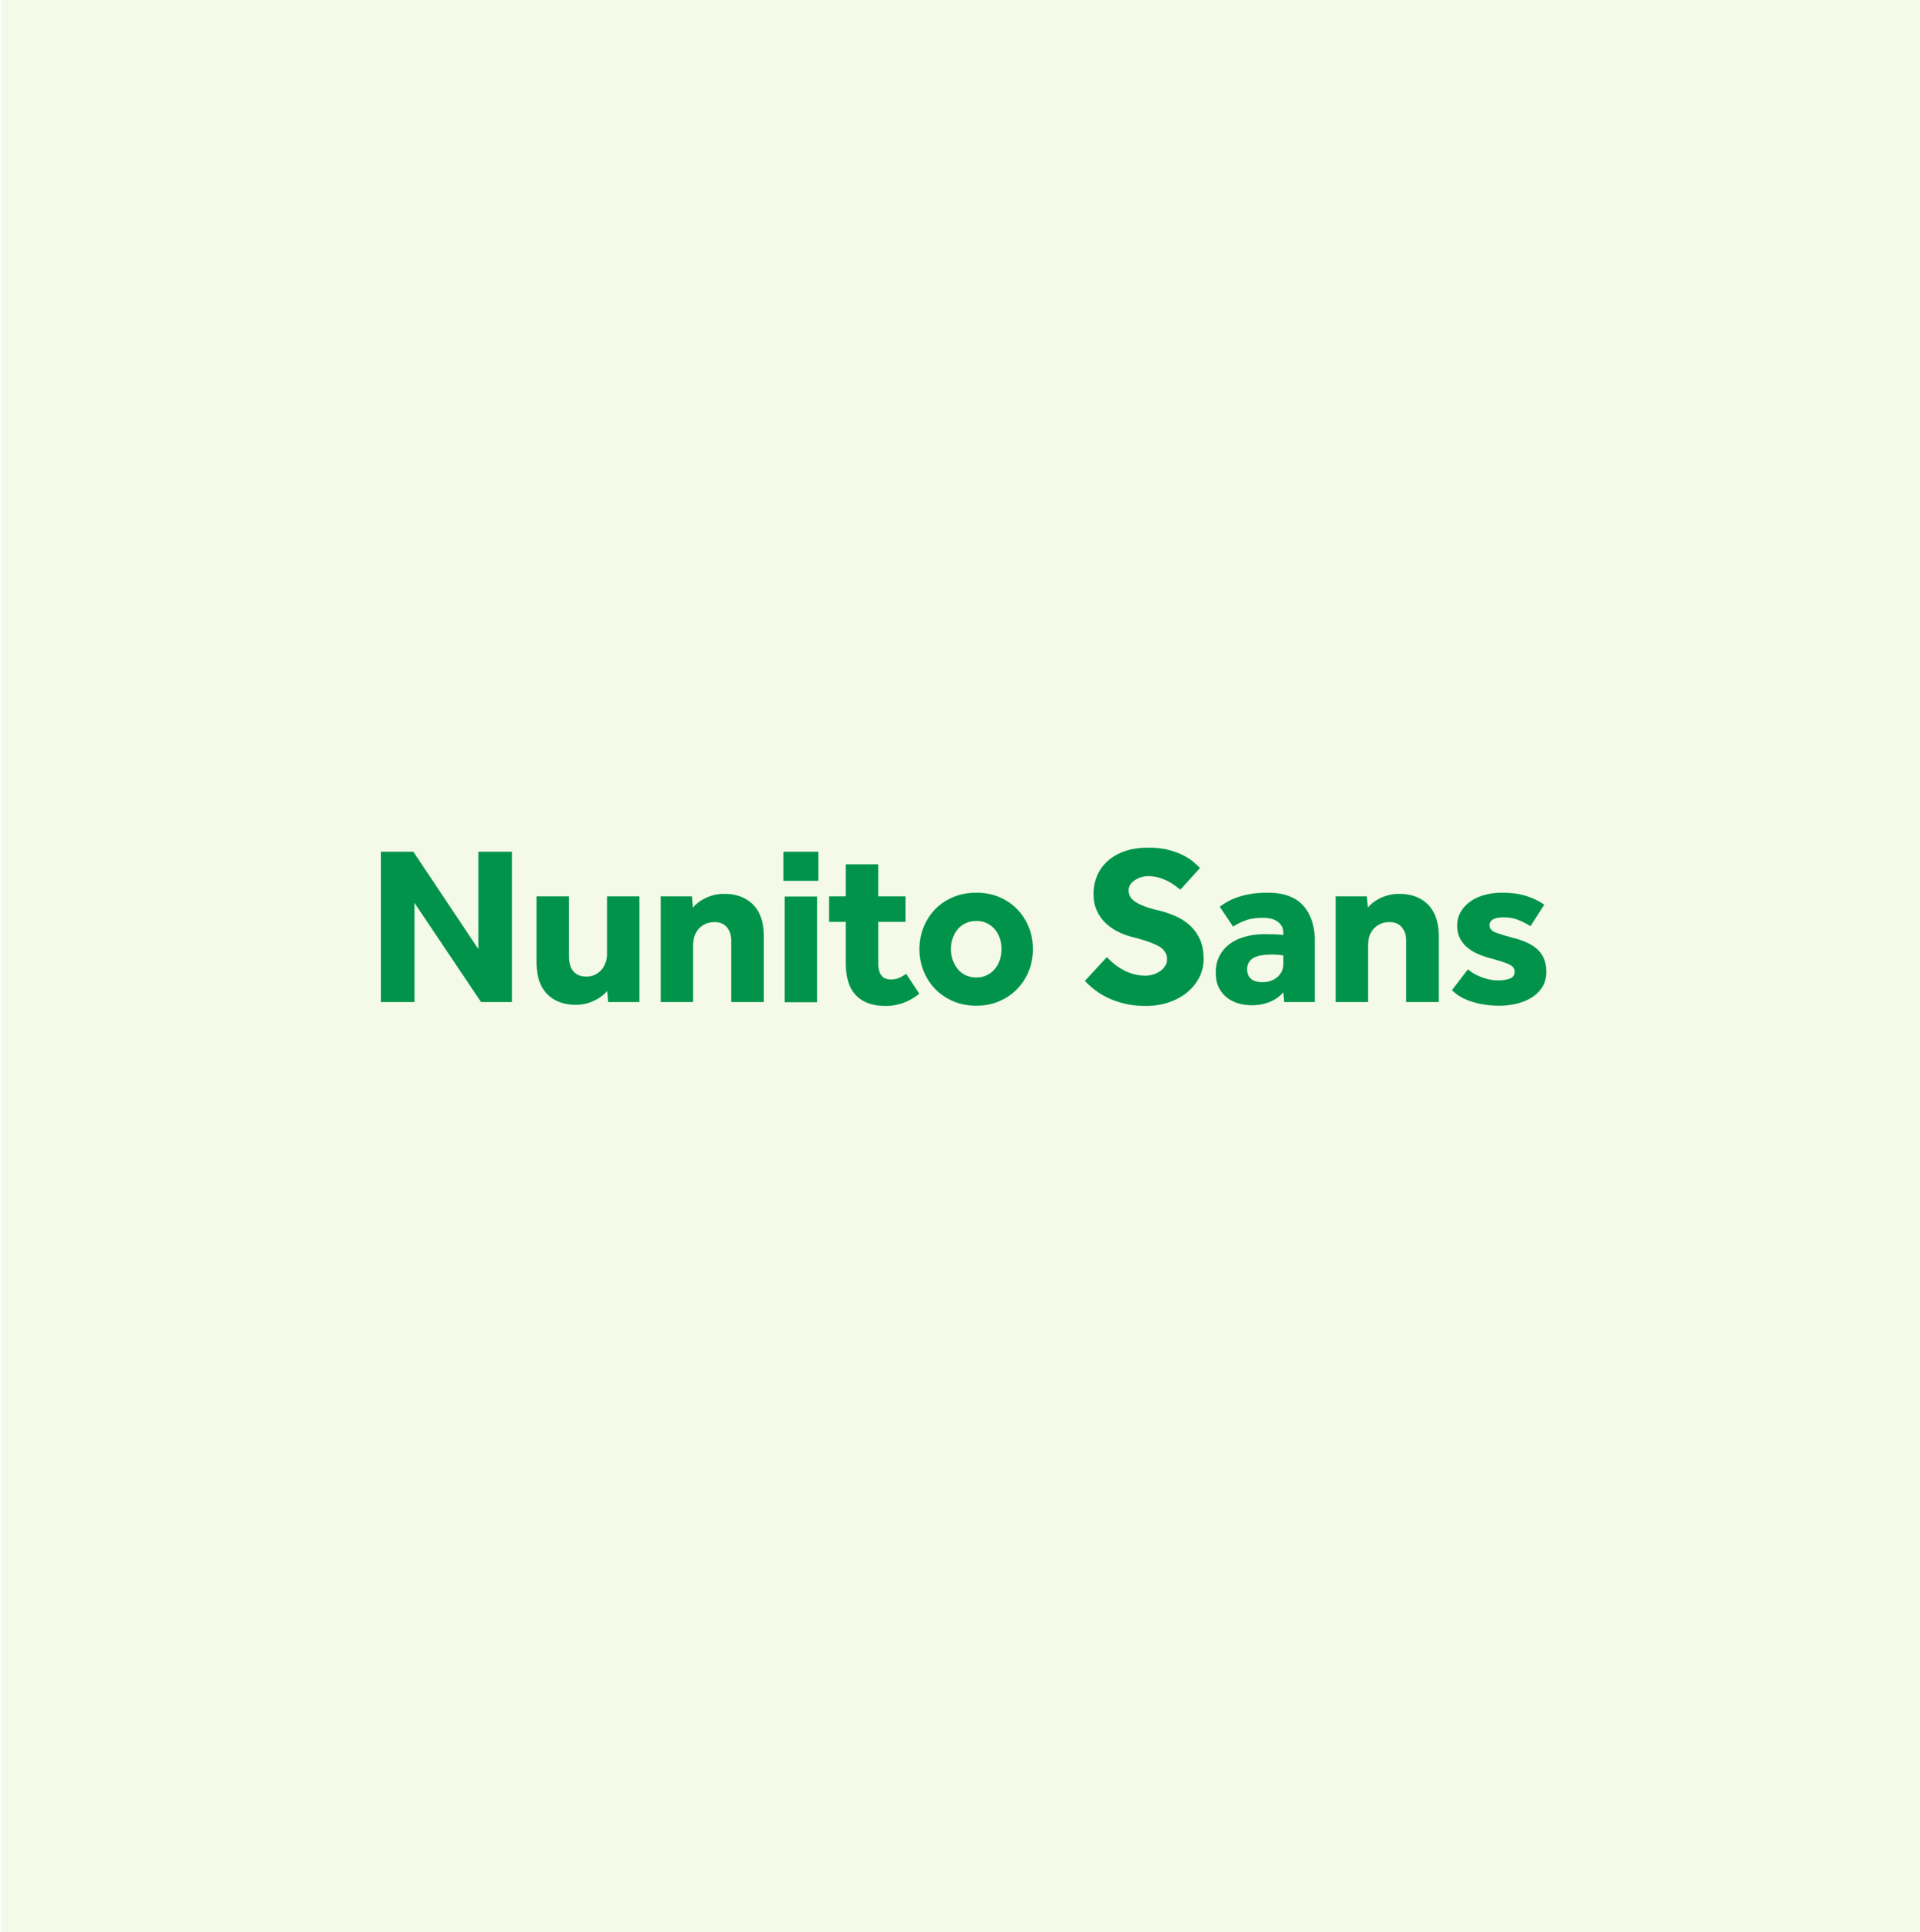 Nunito Sans - This is our substitute typeface from Google Fonts, which should only be used in contexts when Effra cannot be used (i.e. Google Docs, Microsoft Office).